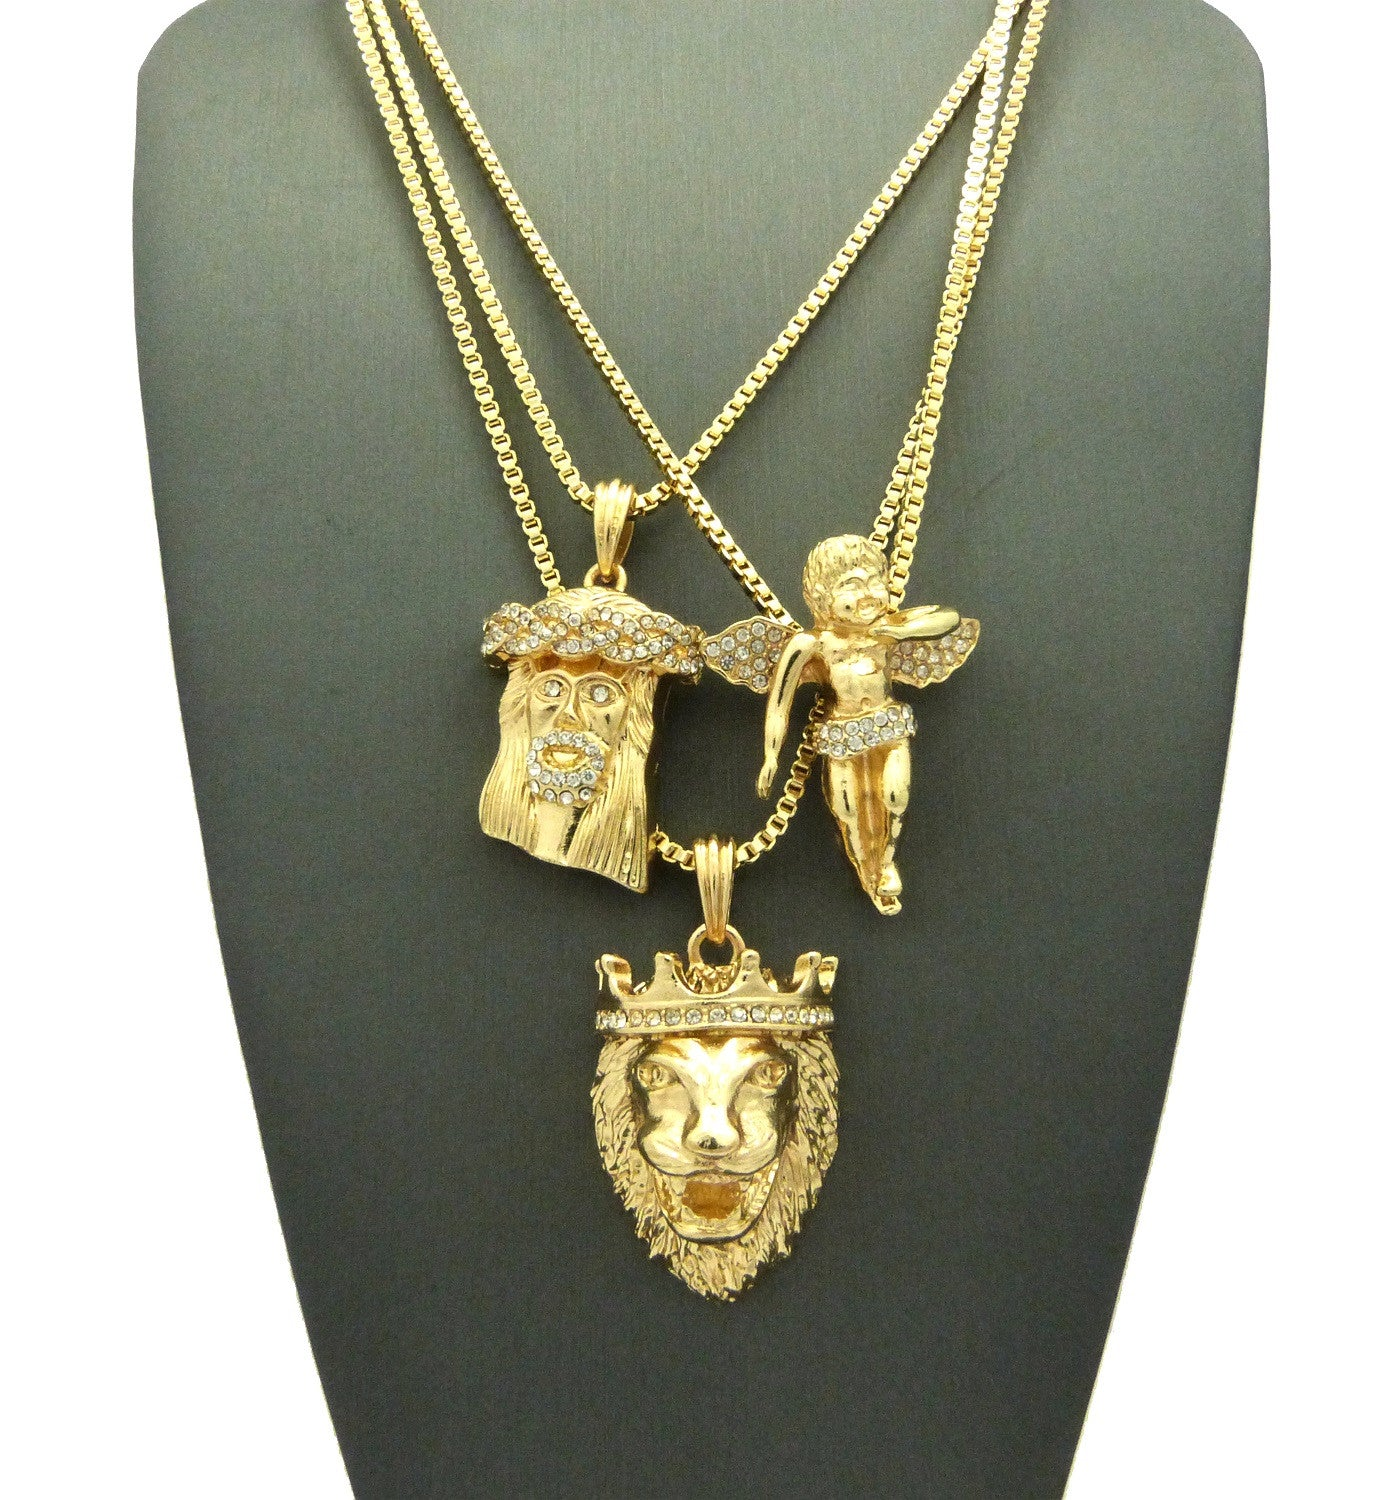 3 Chain Set: Iced Out Jesus Piece King Leo Lion and Iced Out Angel. On two 24inch and 30inch Box Chain